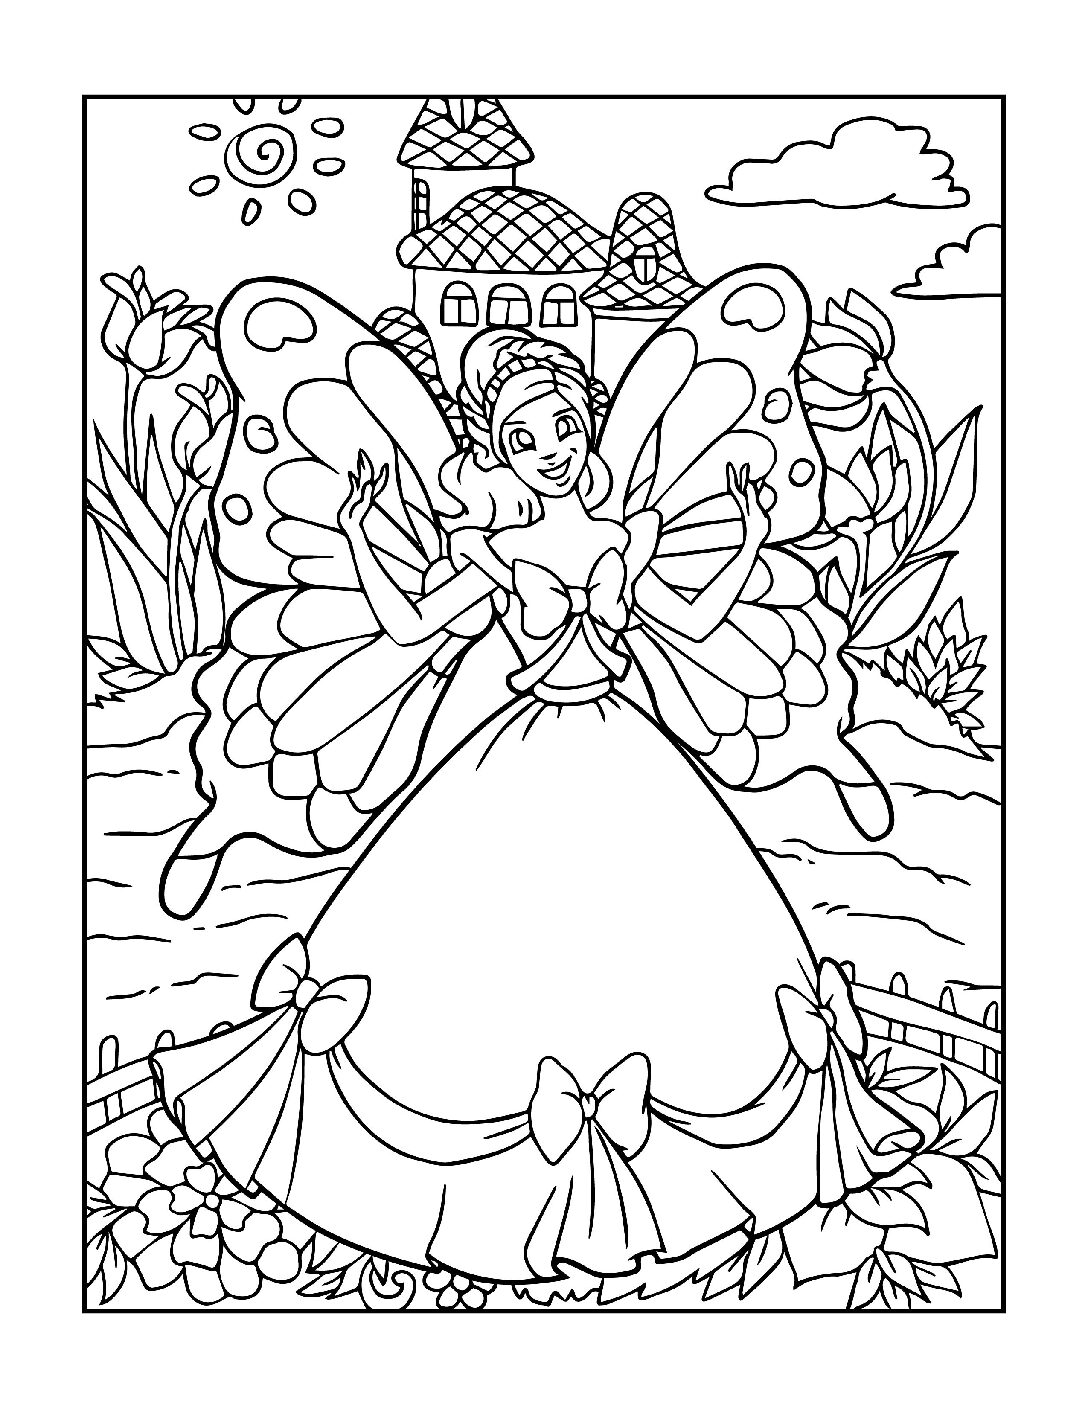 Coloring-Pages-Fairies-12-01-pdf Free Printable Fairy Colouring Pages